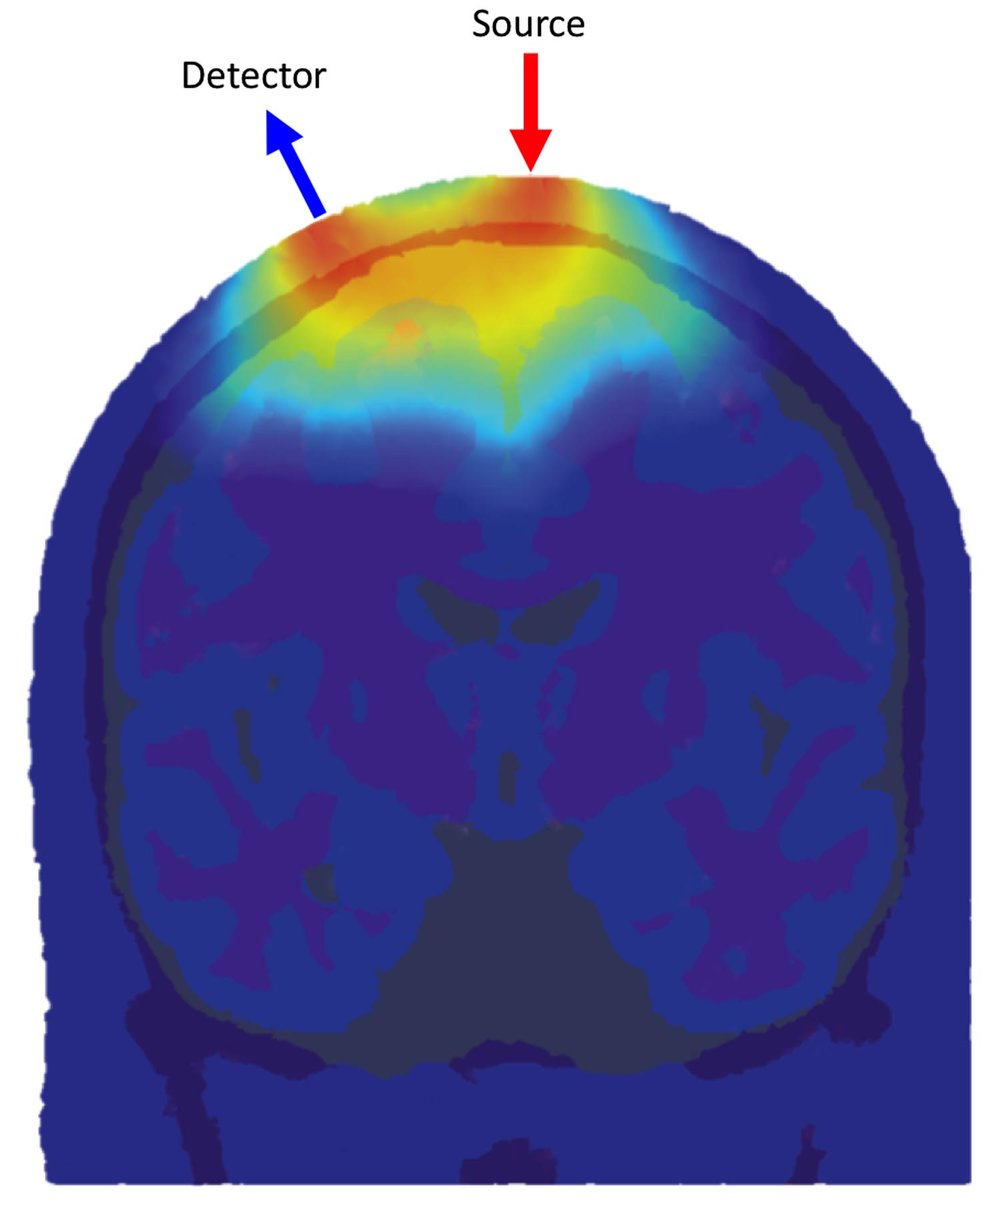 The distribution of detected photon flight paths through an anatomical head model for one source and one detector location. The greater the density of photon paths, the greater the sensitivity of the fNIRS channel to that location.